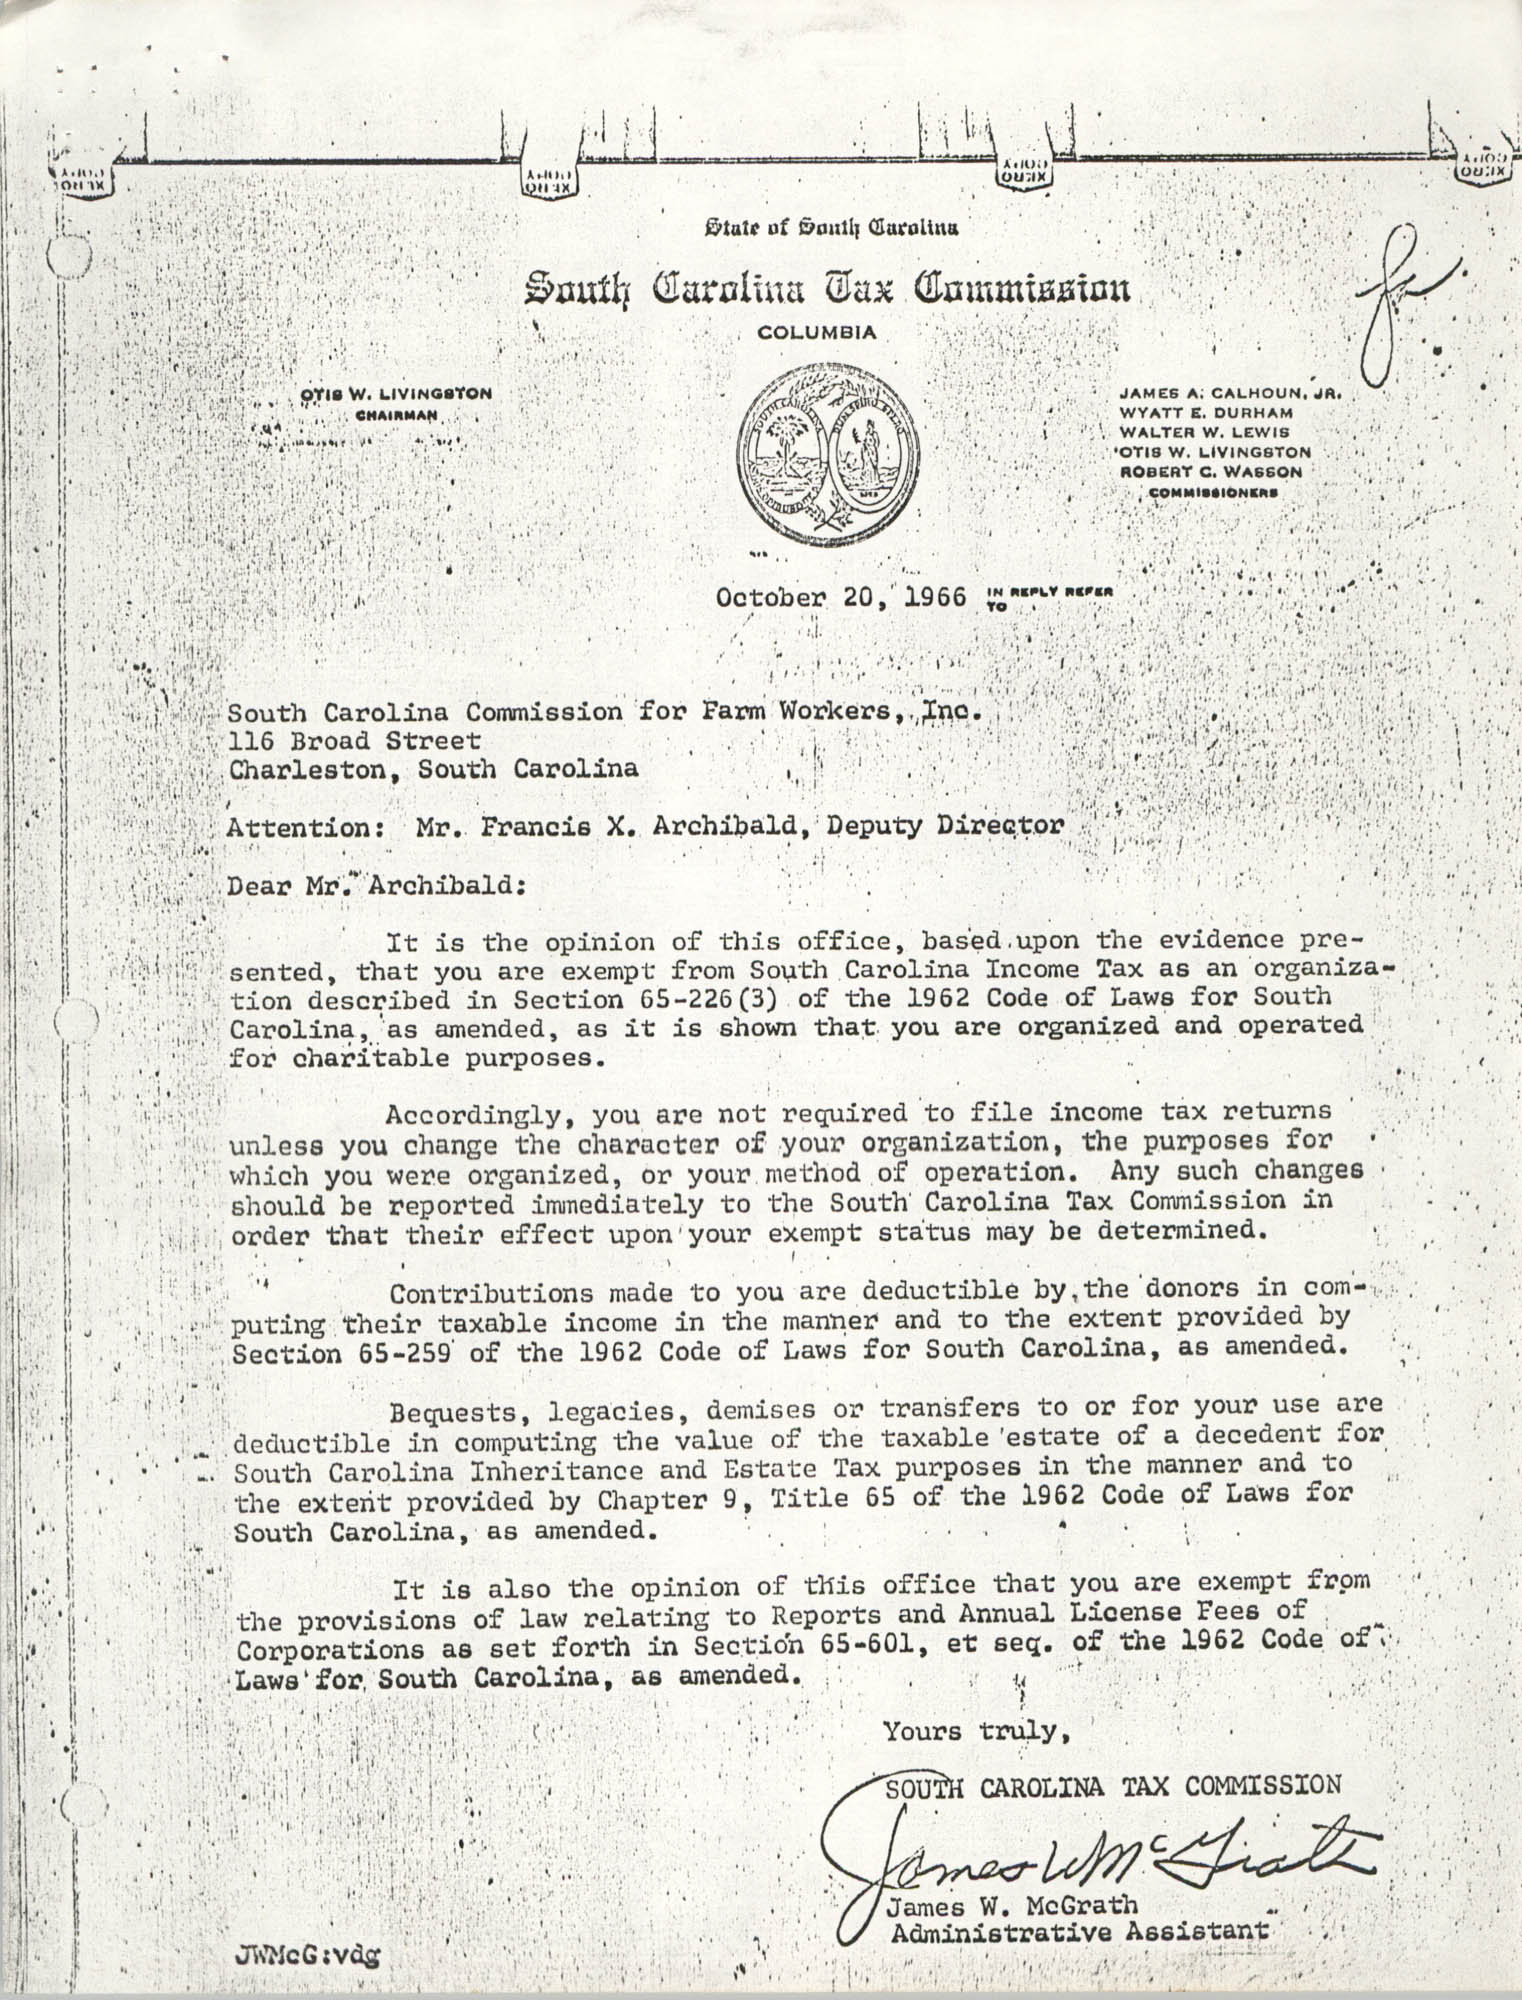 Letter from South Carolina Tax Commission to South Carolina Commission for Farm Workers, Inc.